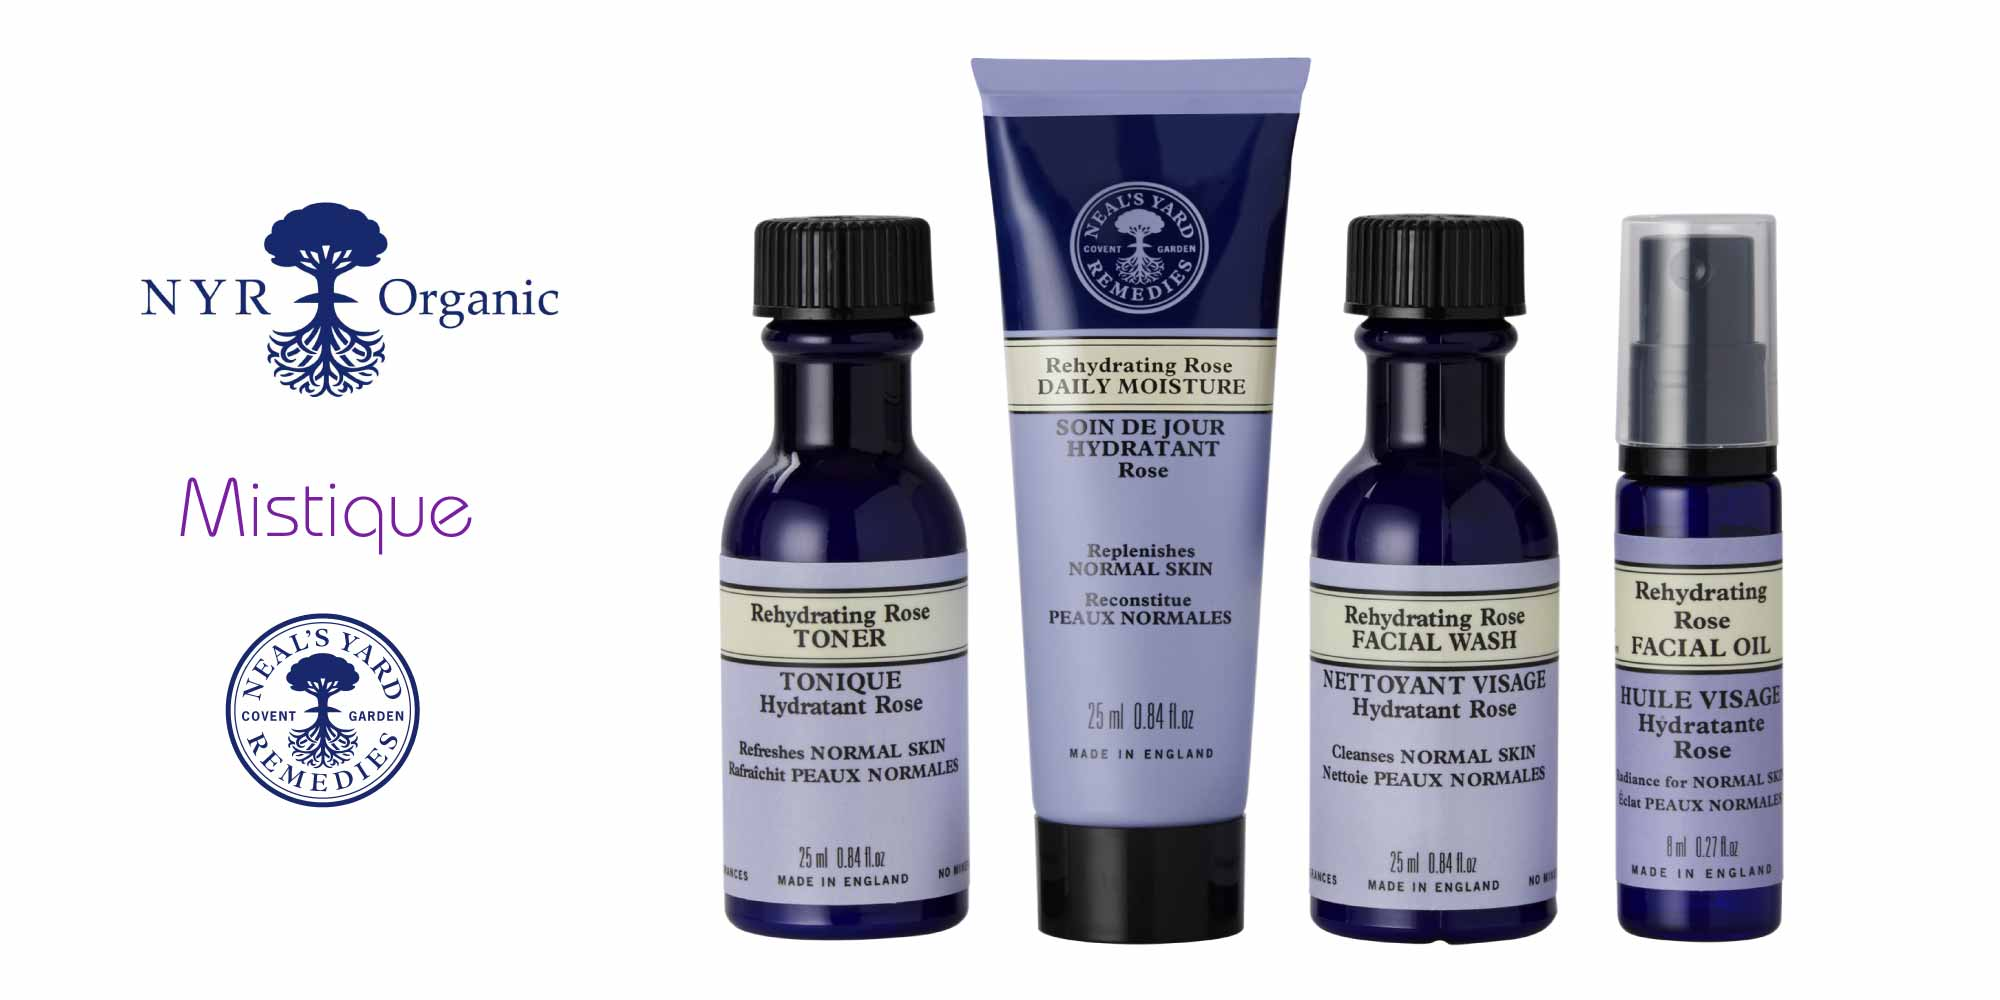 neal's yard facial treatments products